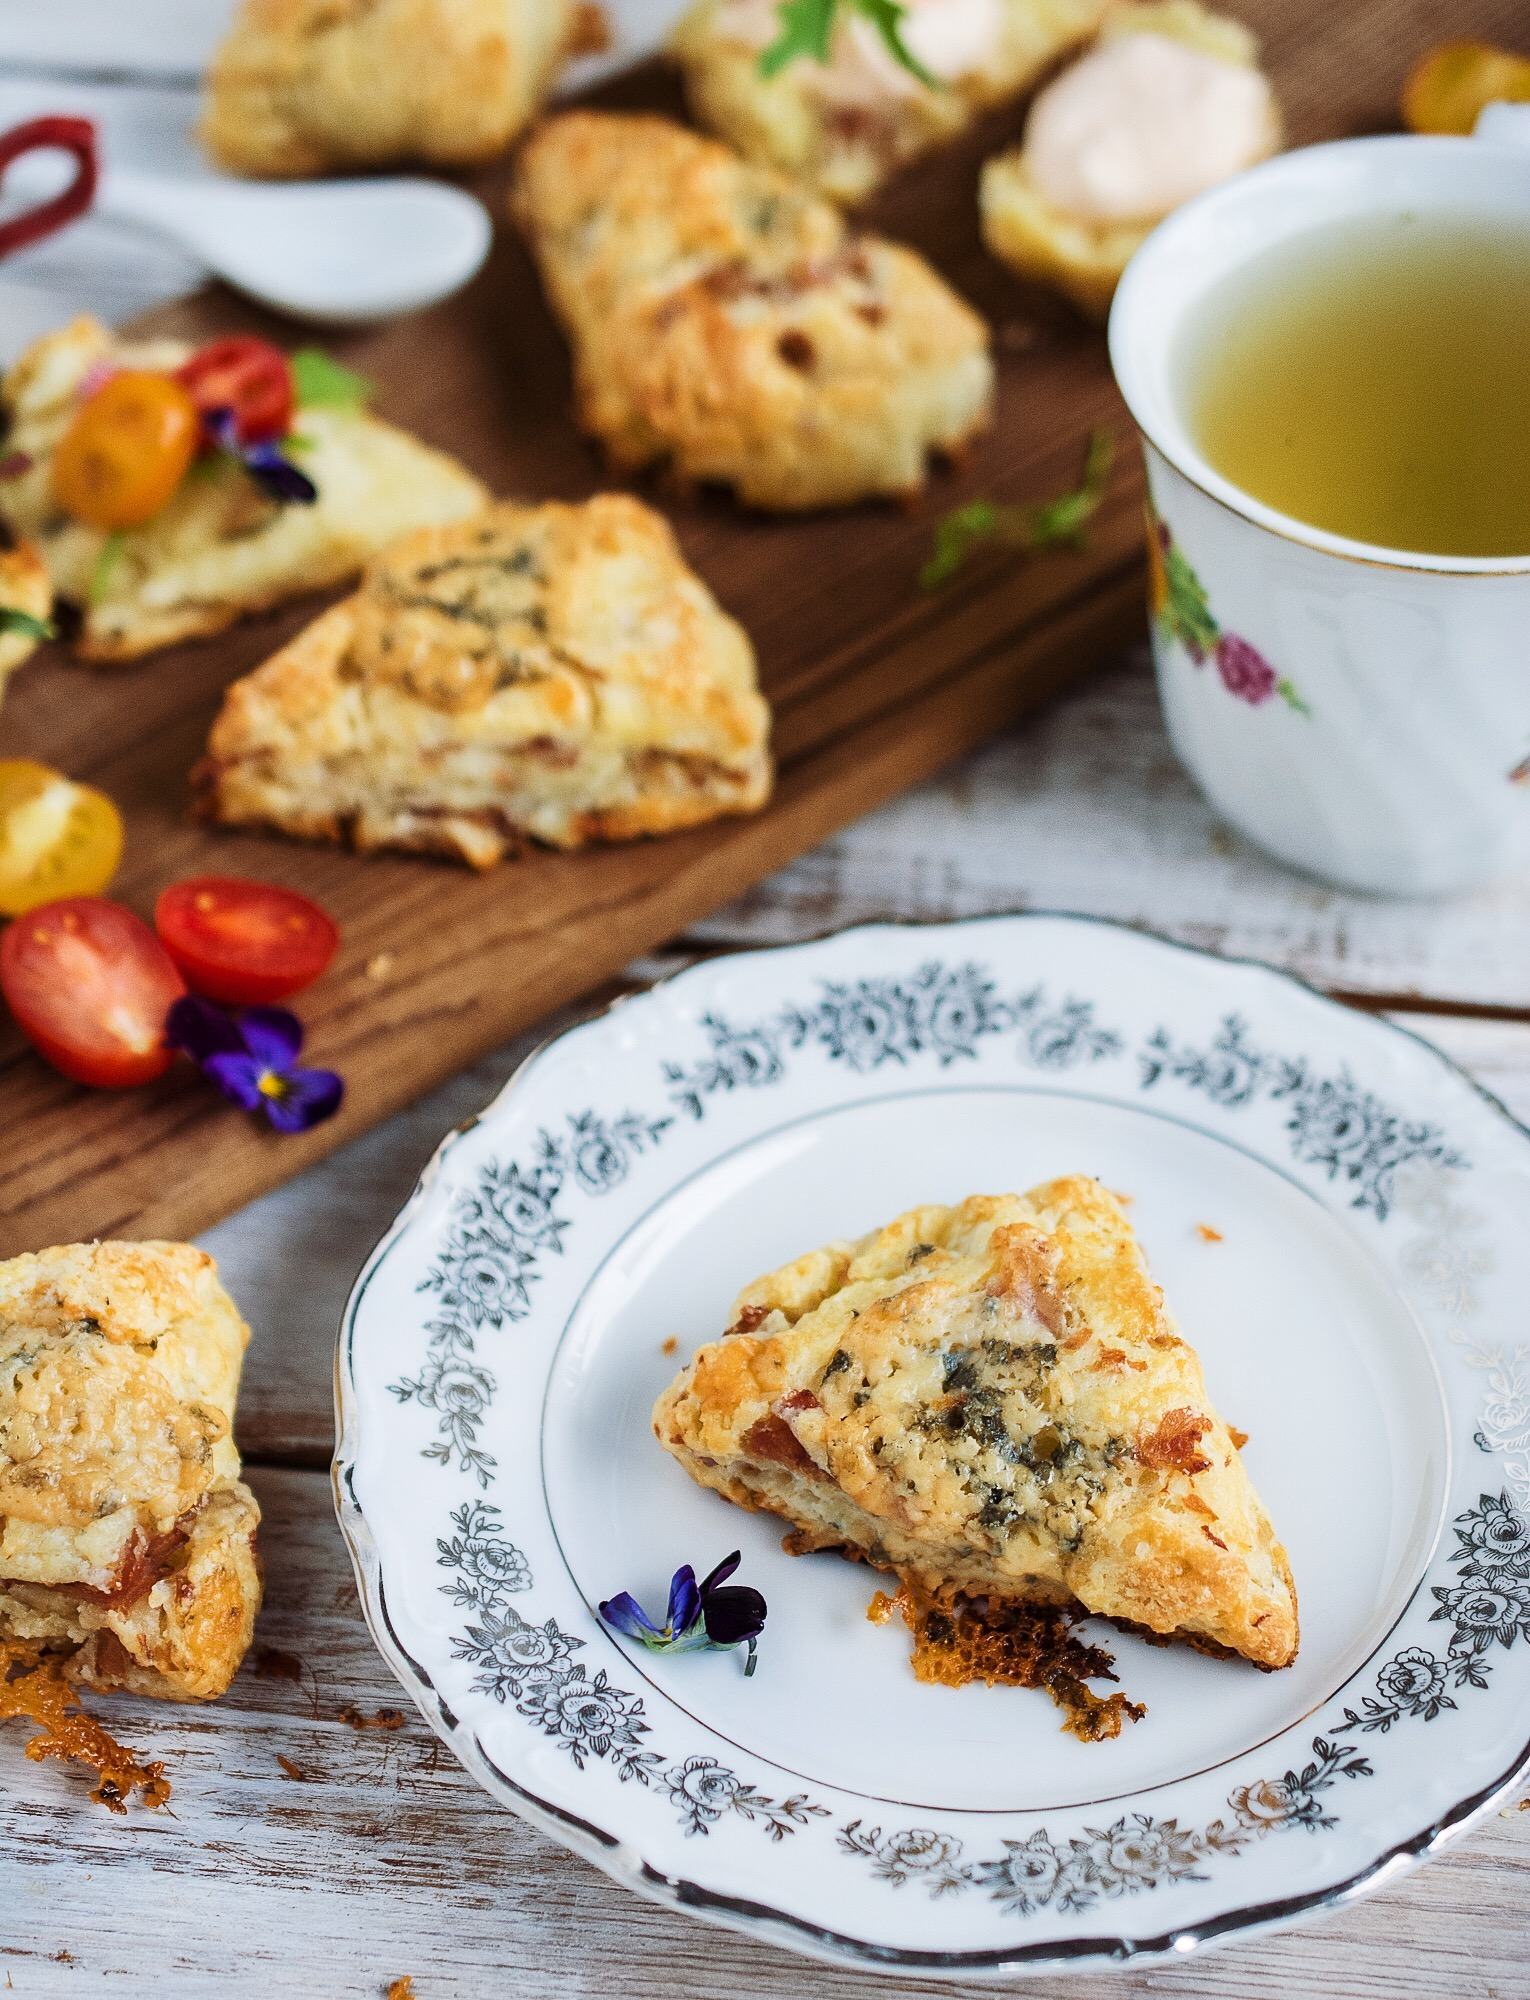 A ham and blue cheese scones on a plate next to a wooden board of scones.